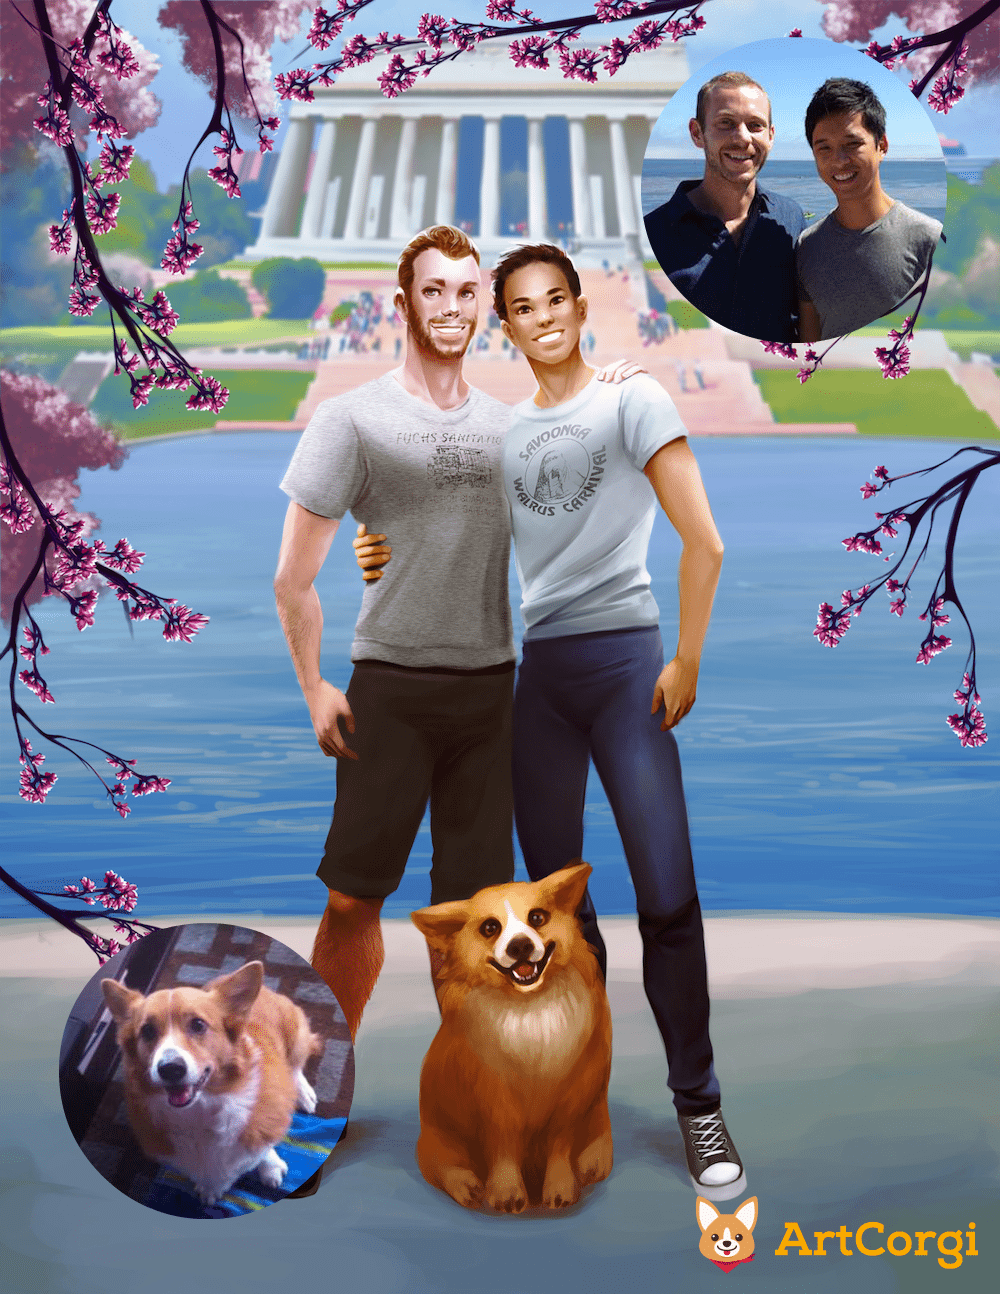 DC Couple Portrait by Nell Fallcard via ArtCorgi Before and After